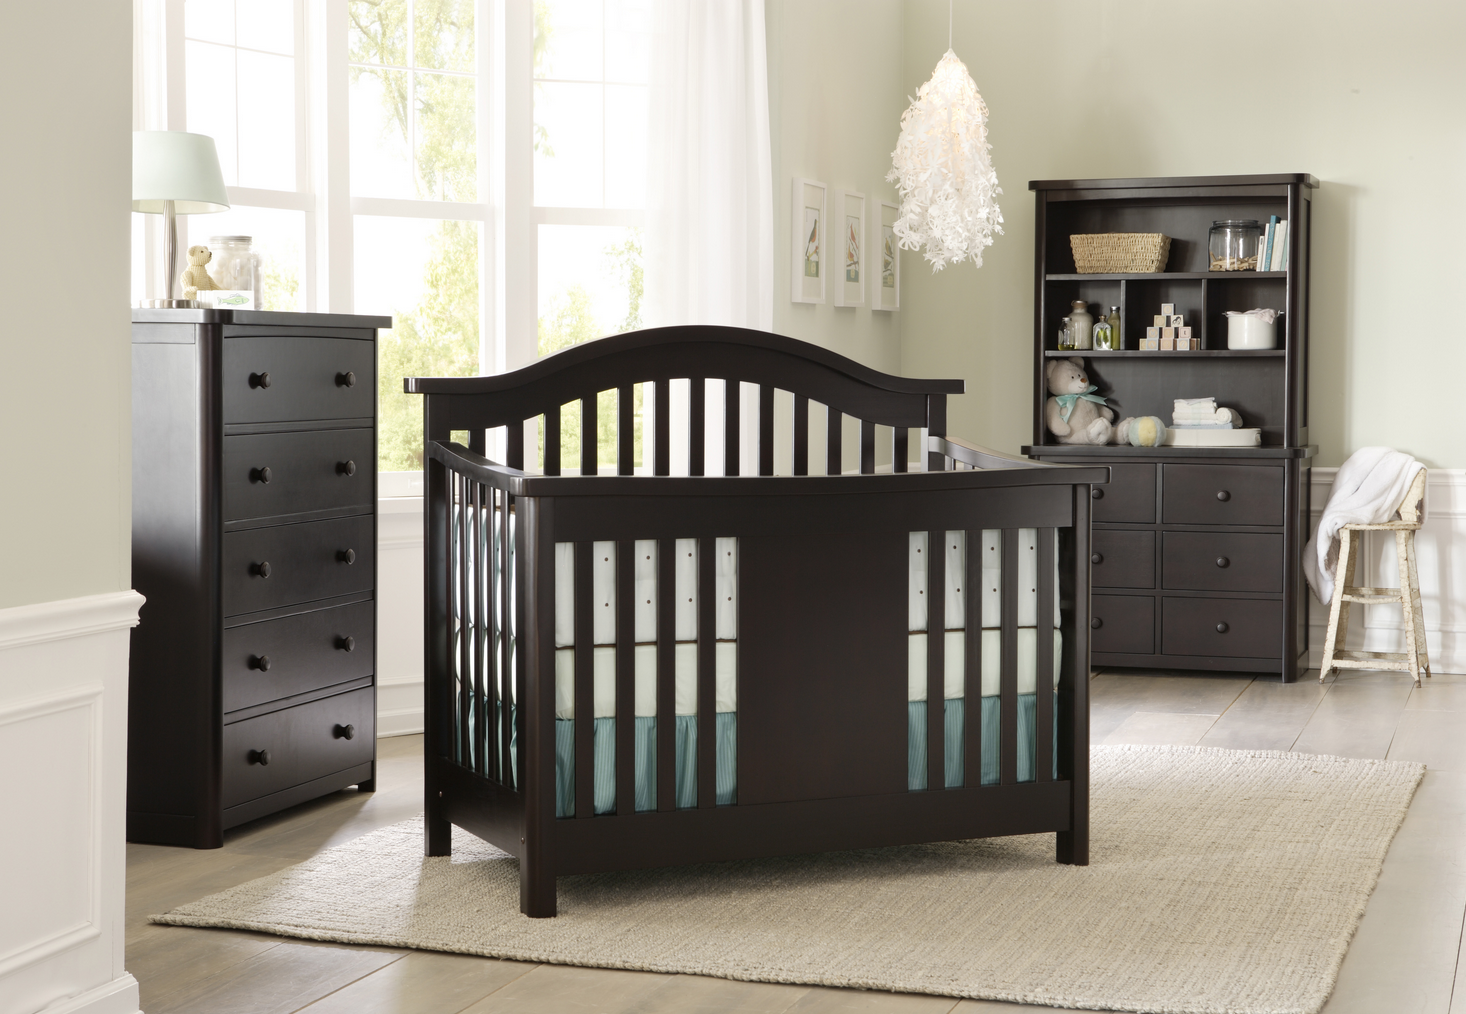 Espresso crib for sale - Baby Appleseed Stratford Convertible Crib In Espresso